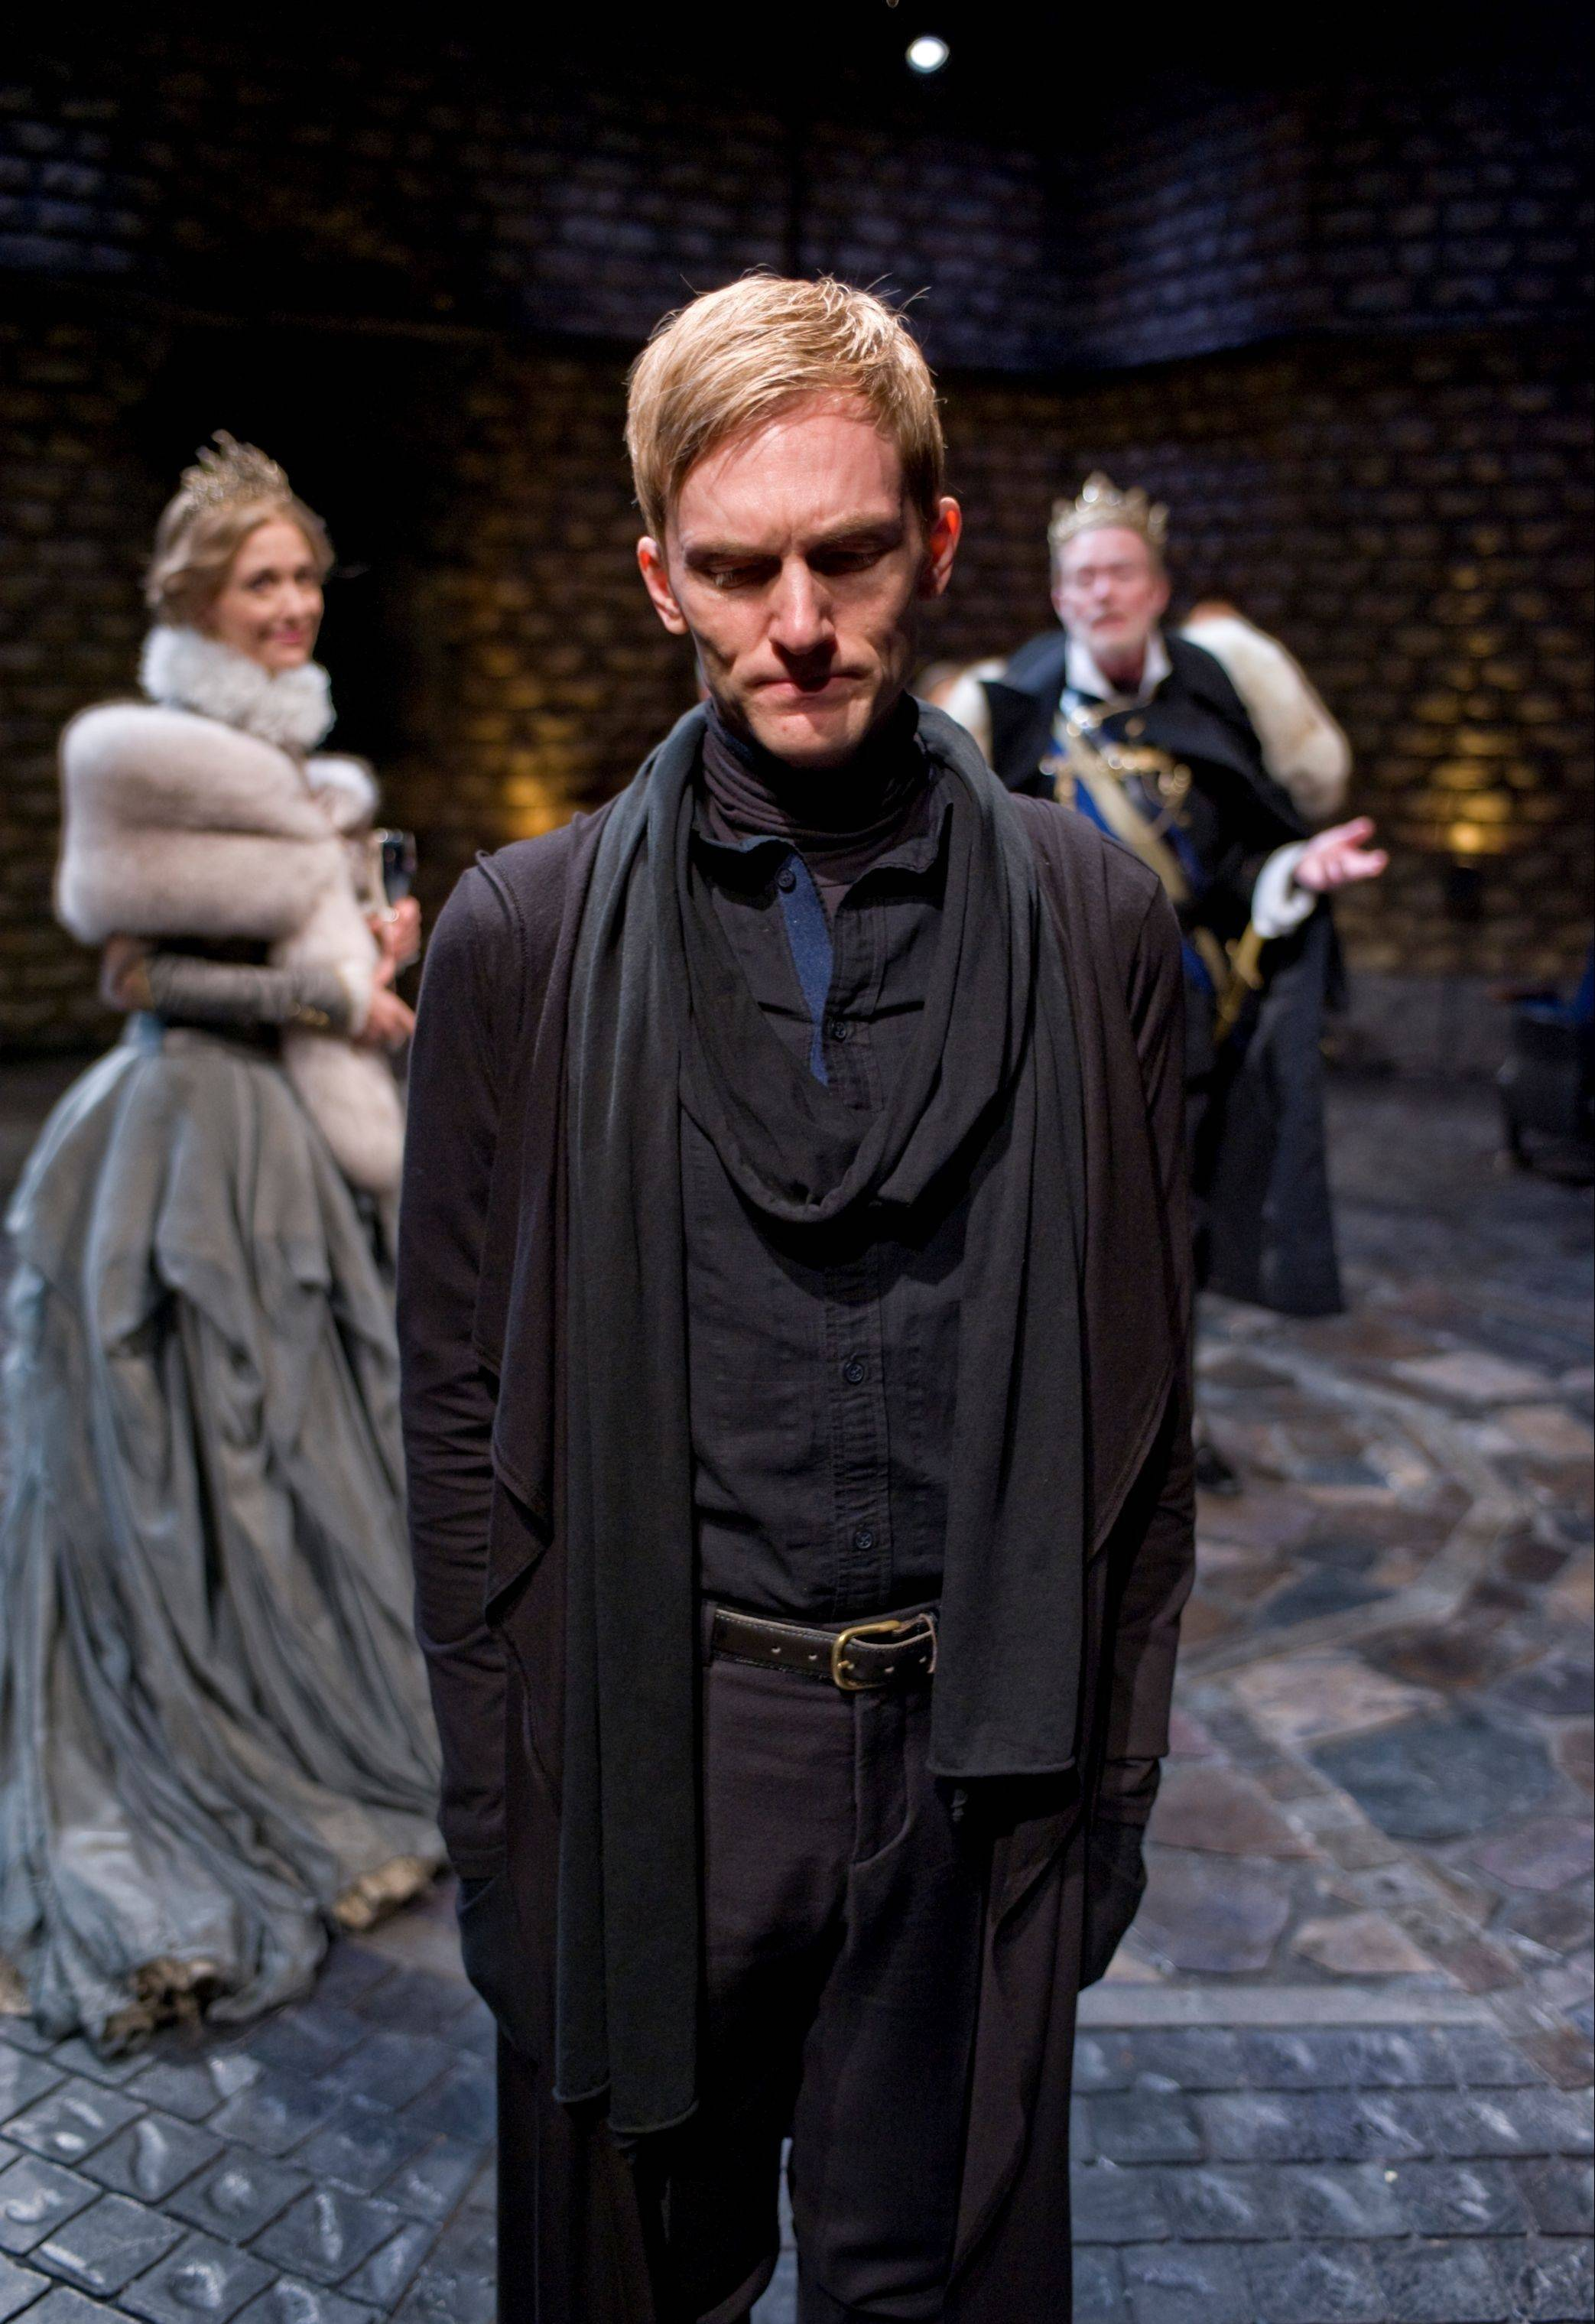 Scott Parkinson, center, is riveting as Hamlet in the Writers' Theatre production, which also stars Shannon Cochran as Gertrude and Michael Canavan as Claudius.